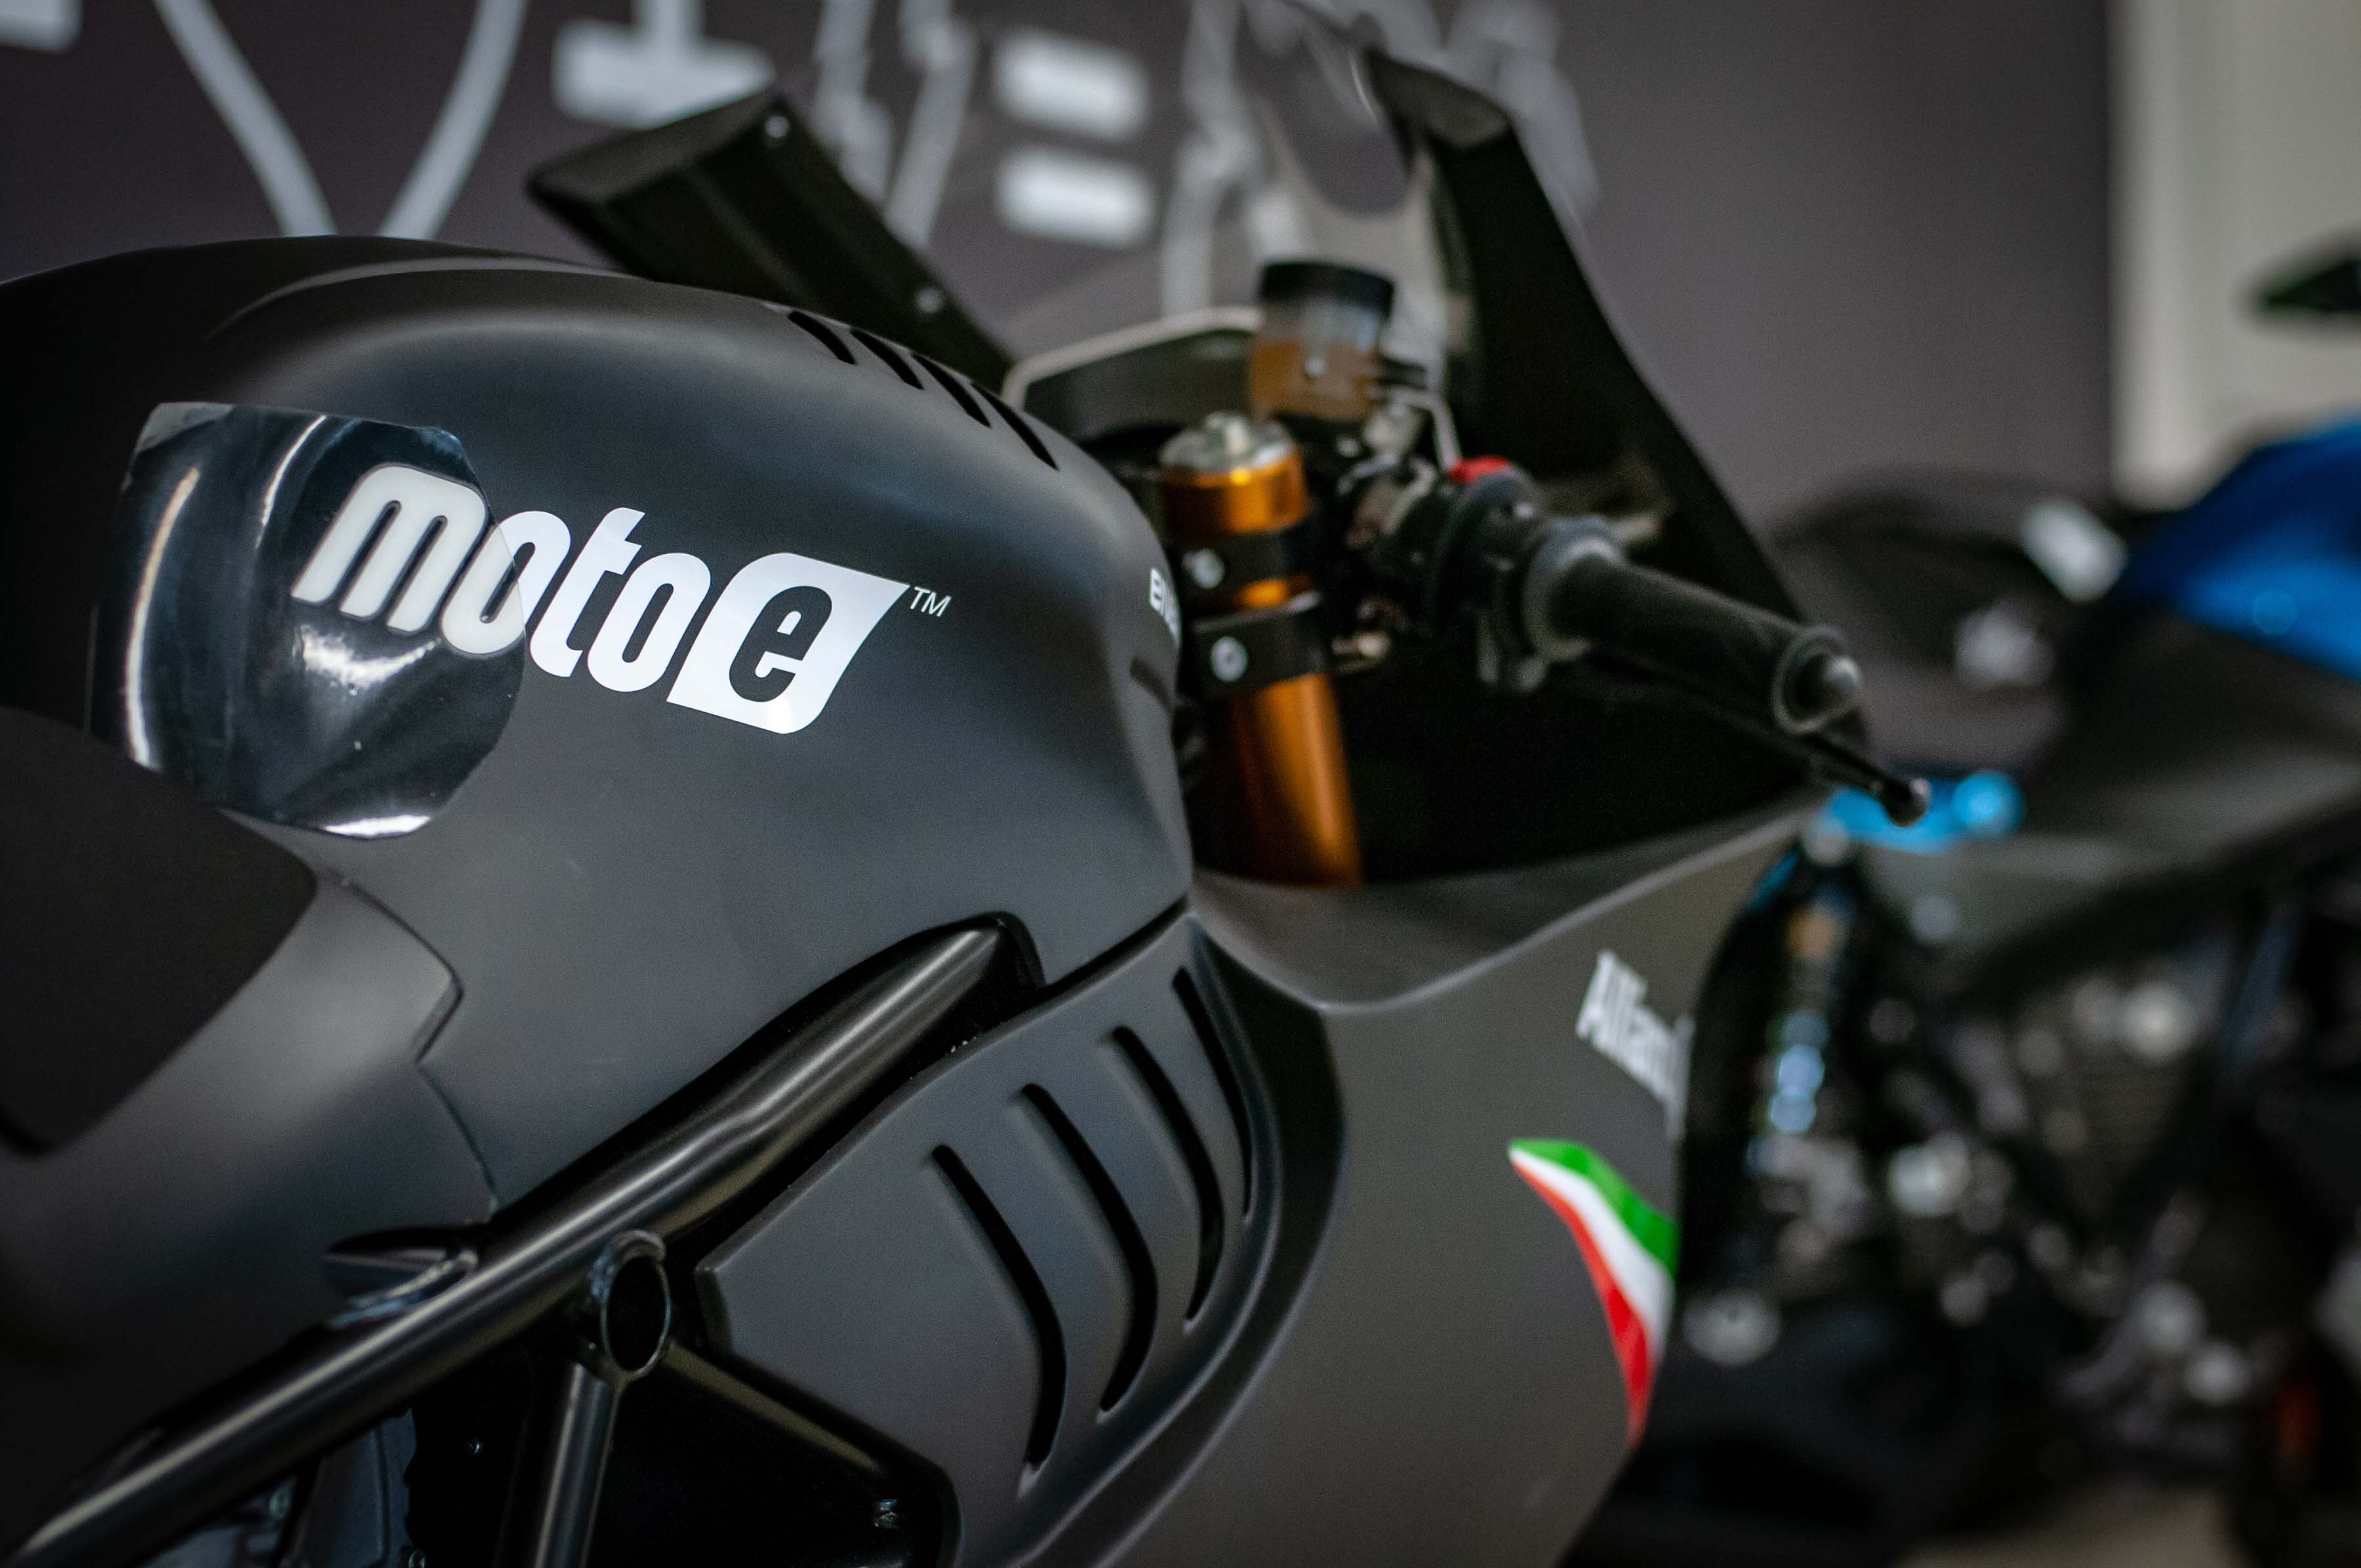 Energica-Ego-Corsa-up-close-Jensen-Beeler-07